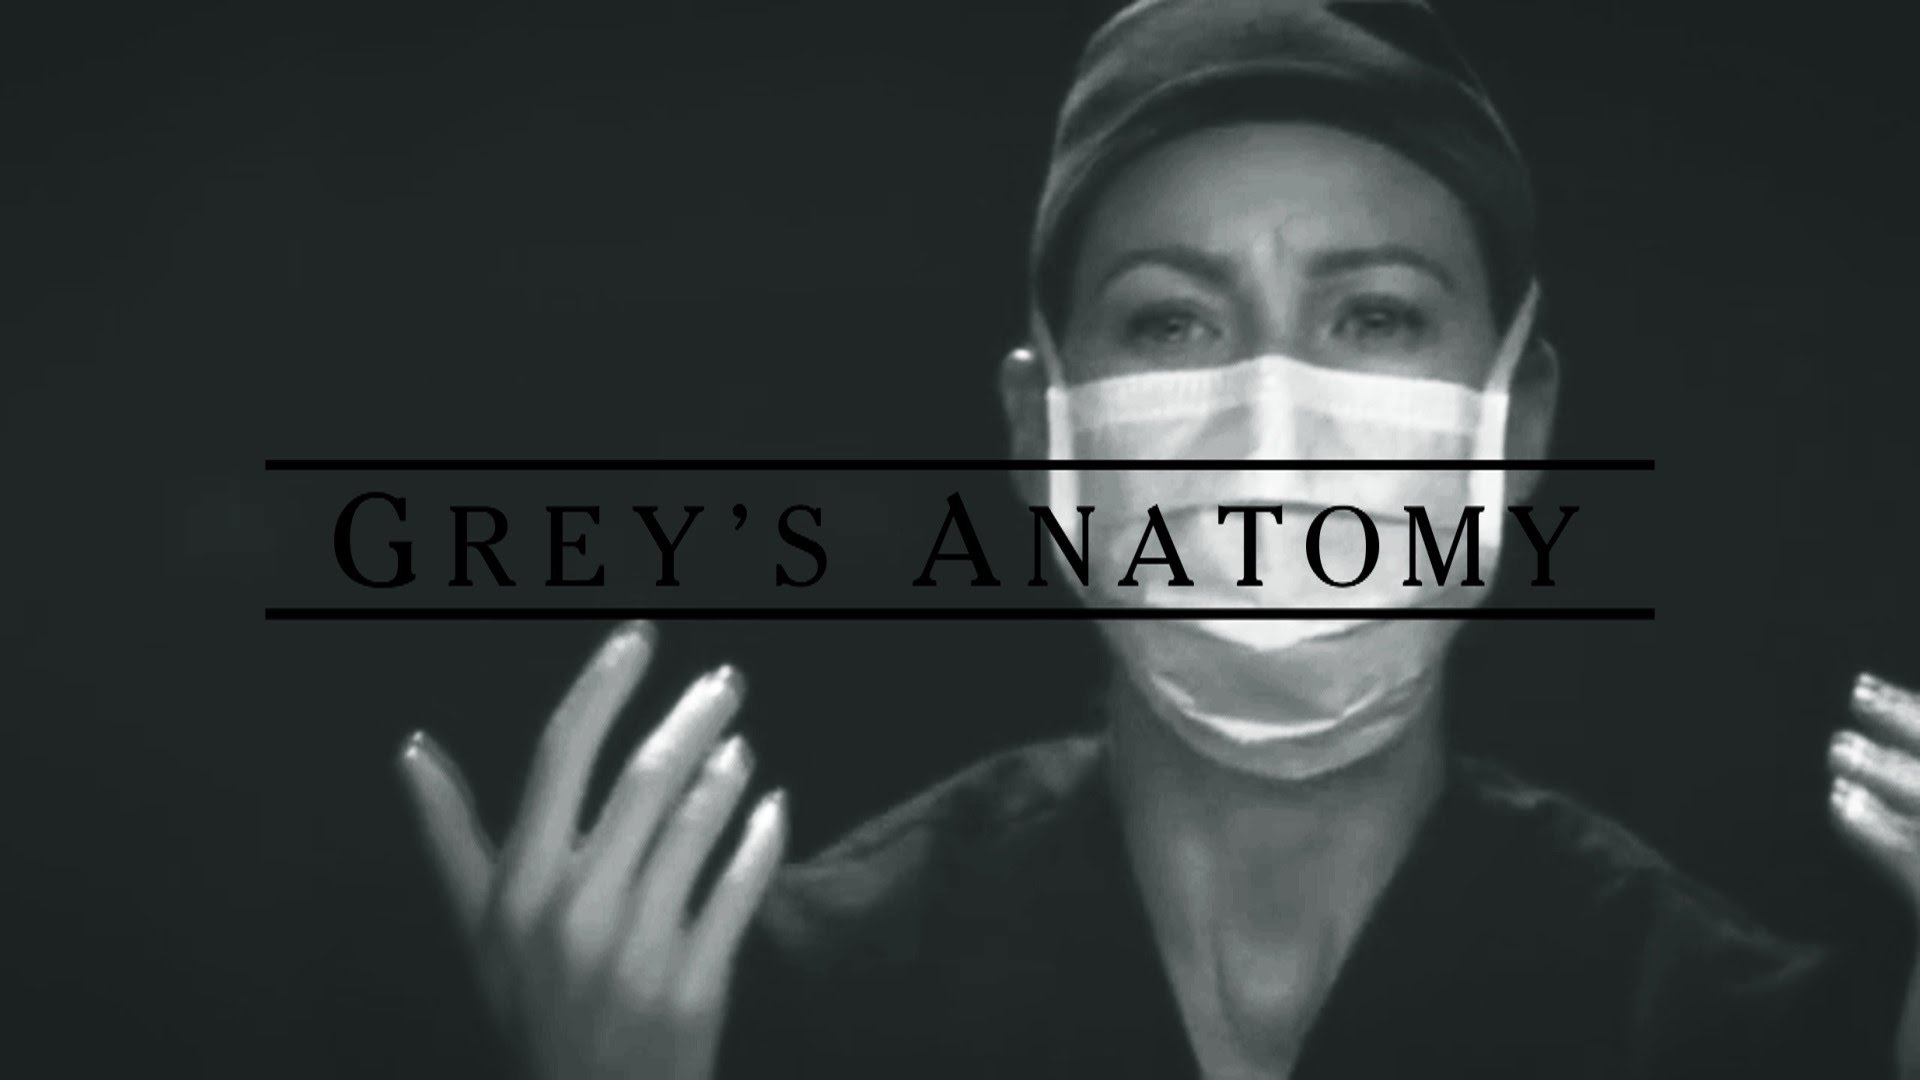 Greys Anatomy Wallpaper 24   1920 X 1080 stmednet 1920x1080